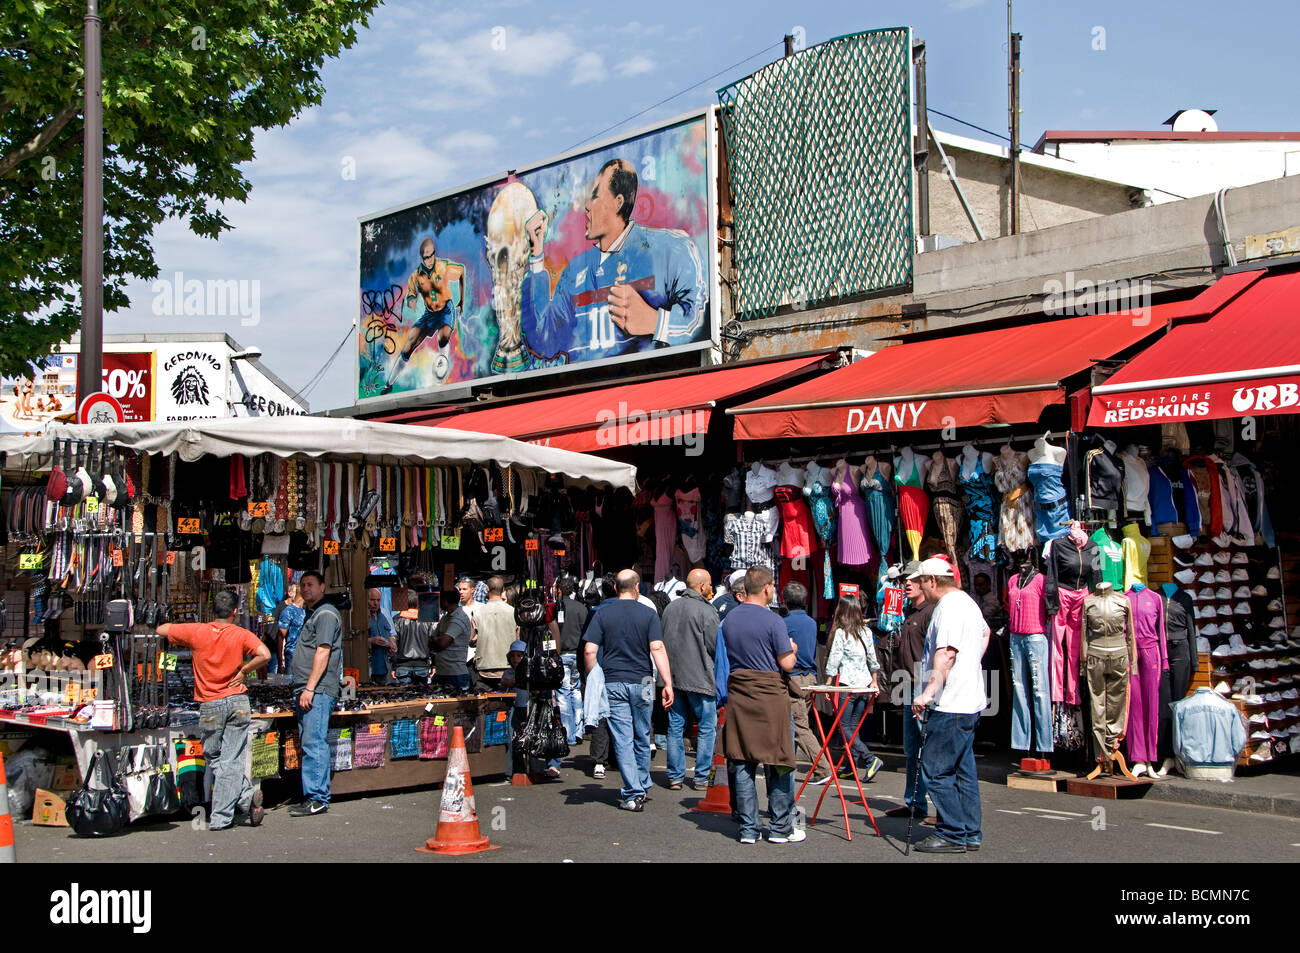 marche aux puces de saint ouen flea market paris stock photo 25041952 alamy. Black Bedroom Furniture Sets. Home Design Ideas